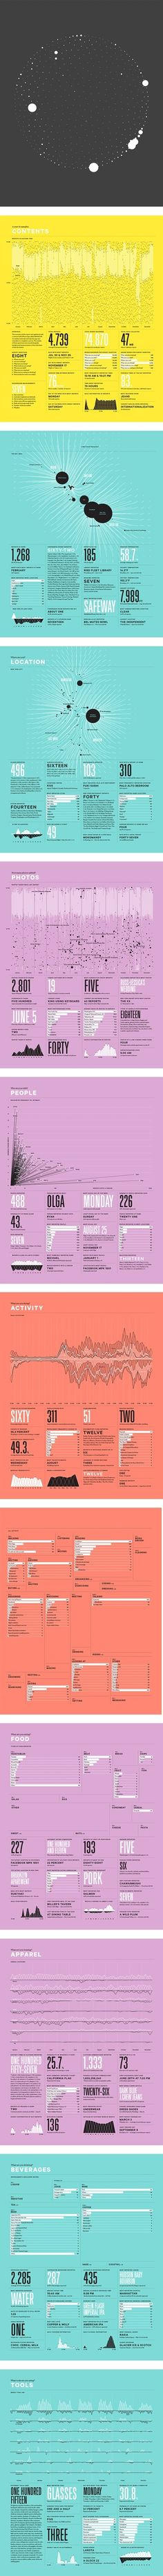 Discover more of the best Data, Visualisation, Nicholas, Felton, and Infographic inspiration on Designspiration Information Architecture, Information Design, Information Graphics, Information Visualization, Data Visualization, Music Visualisation, Web Design, Design Color, Flat Design